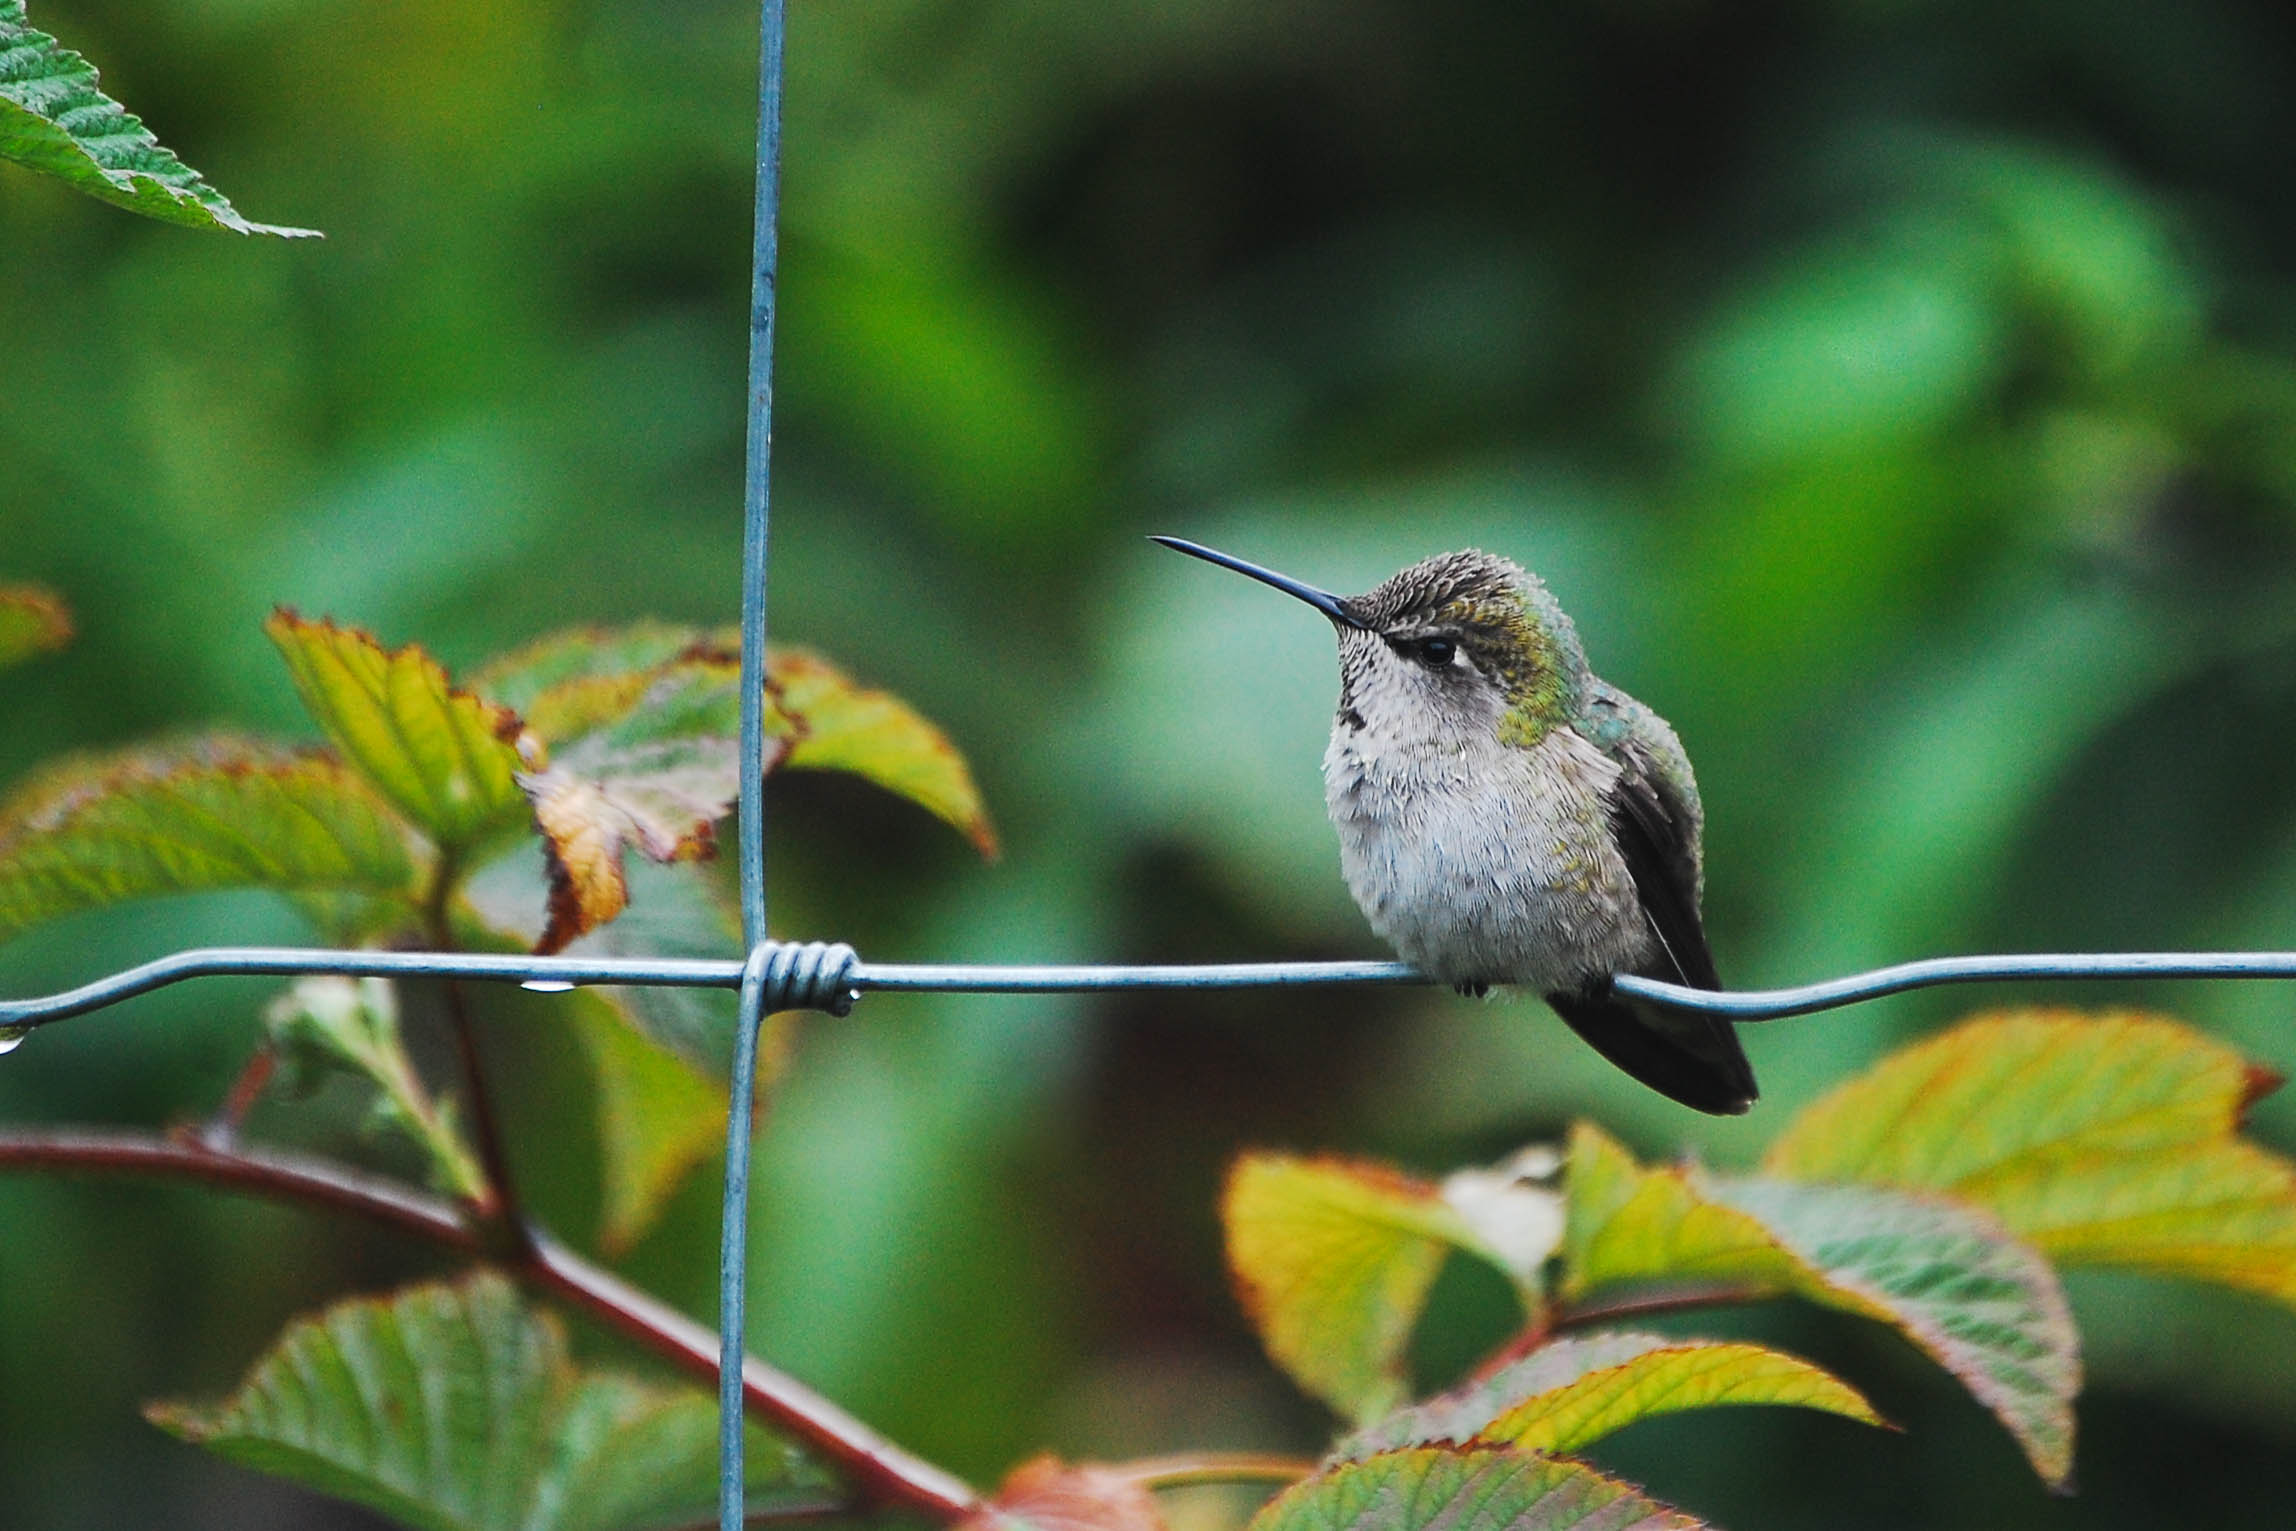 A hummingbird fluffs itself up in the chill following an October rainstorm in Oregon